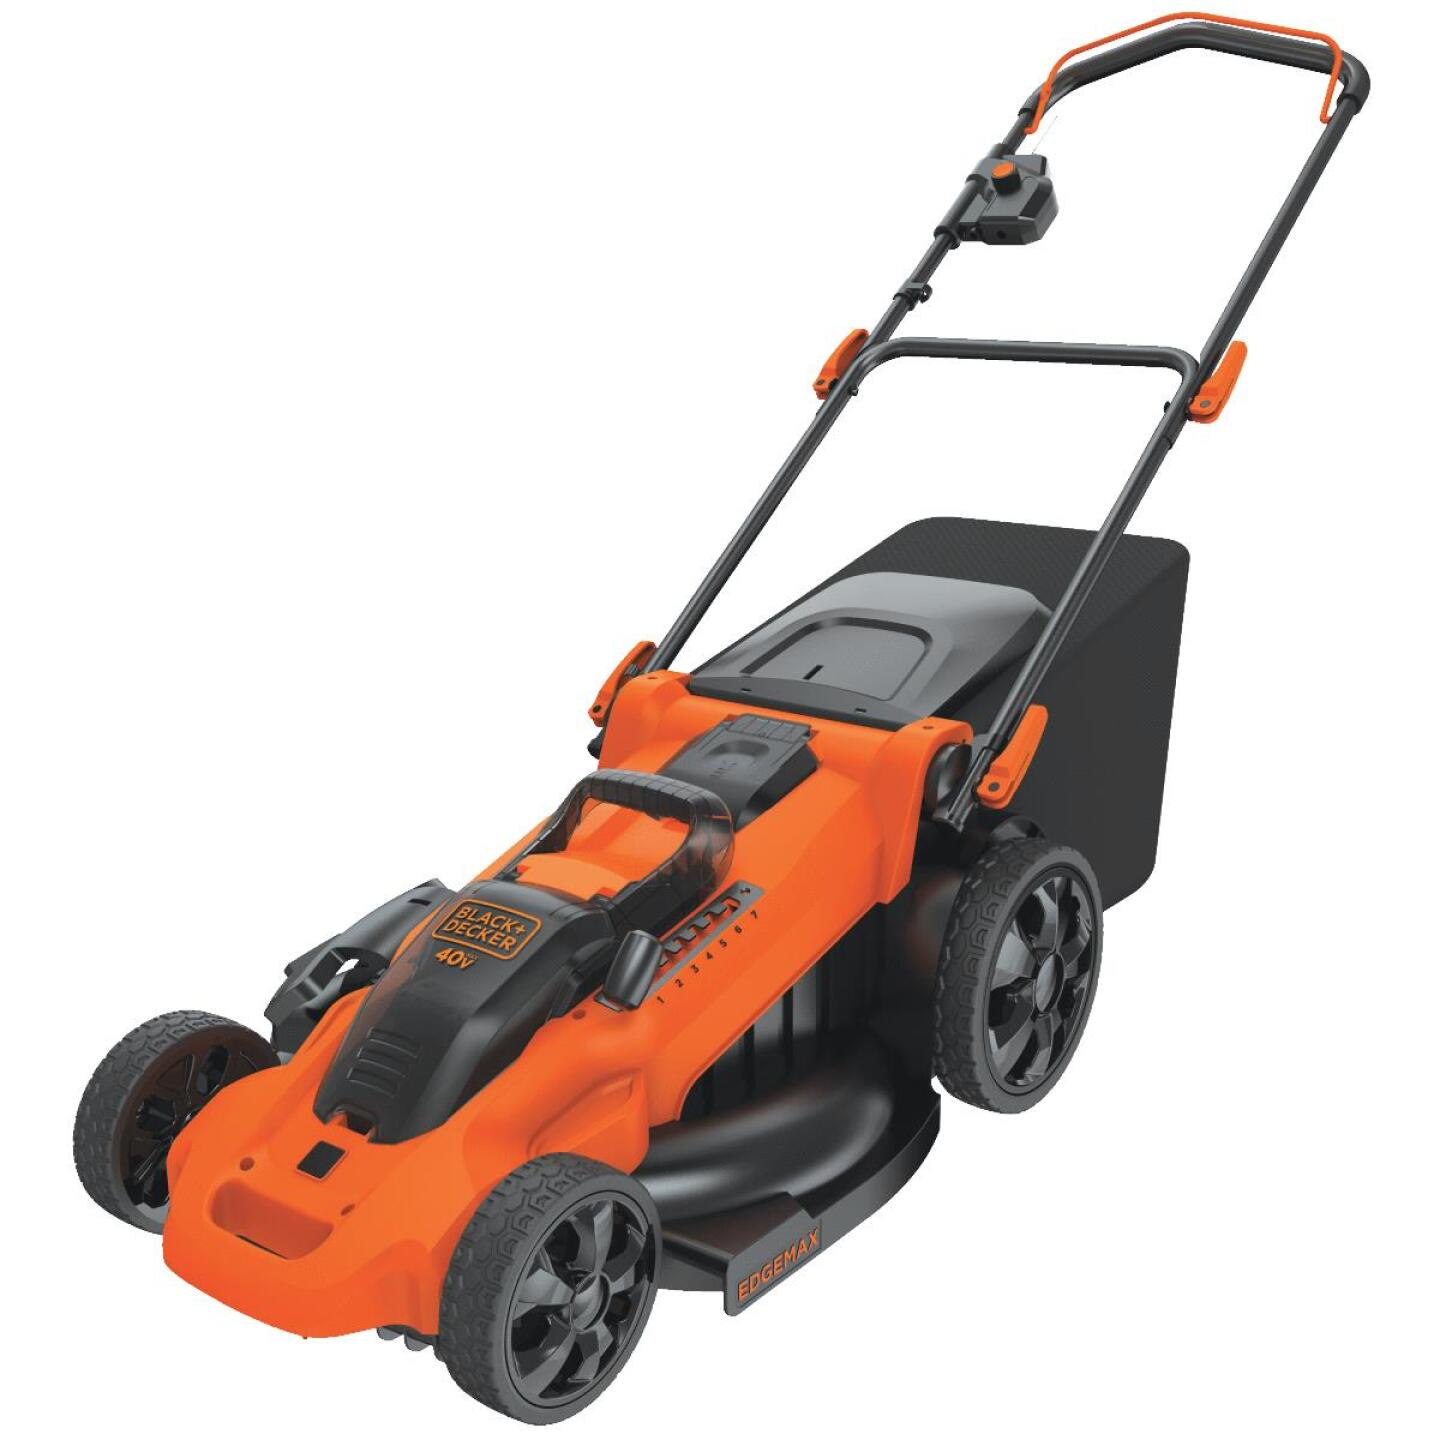 Black & Decker 20 In. 40V MAX Lithium Ion Push Cordless Lawn Mower Image 1